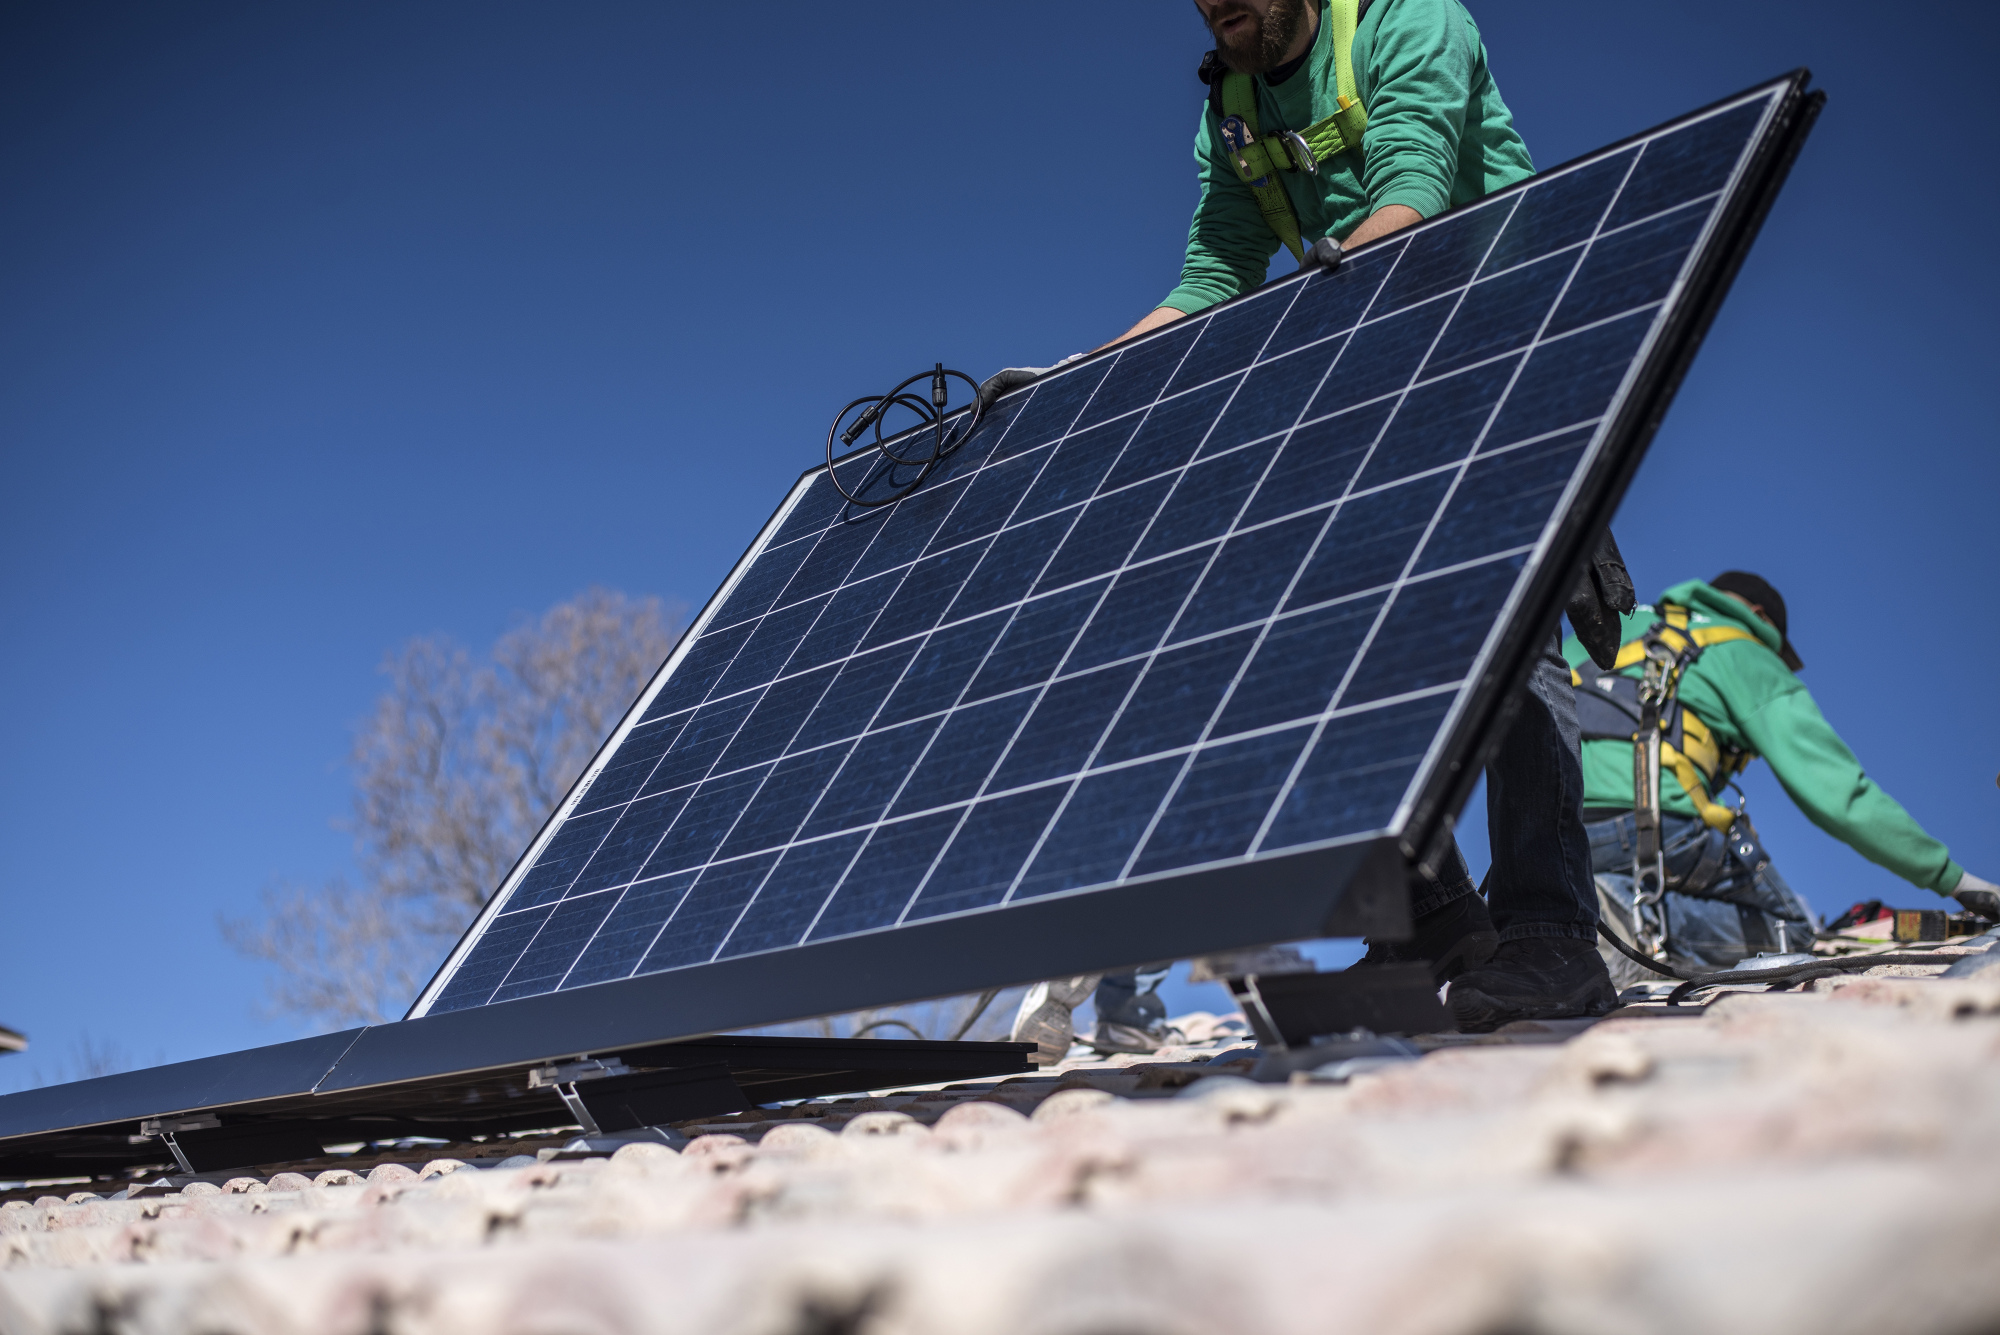 U.S. Trade Panel Proposes Duties of Up to 35% in Solar Case